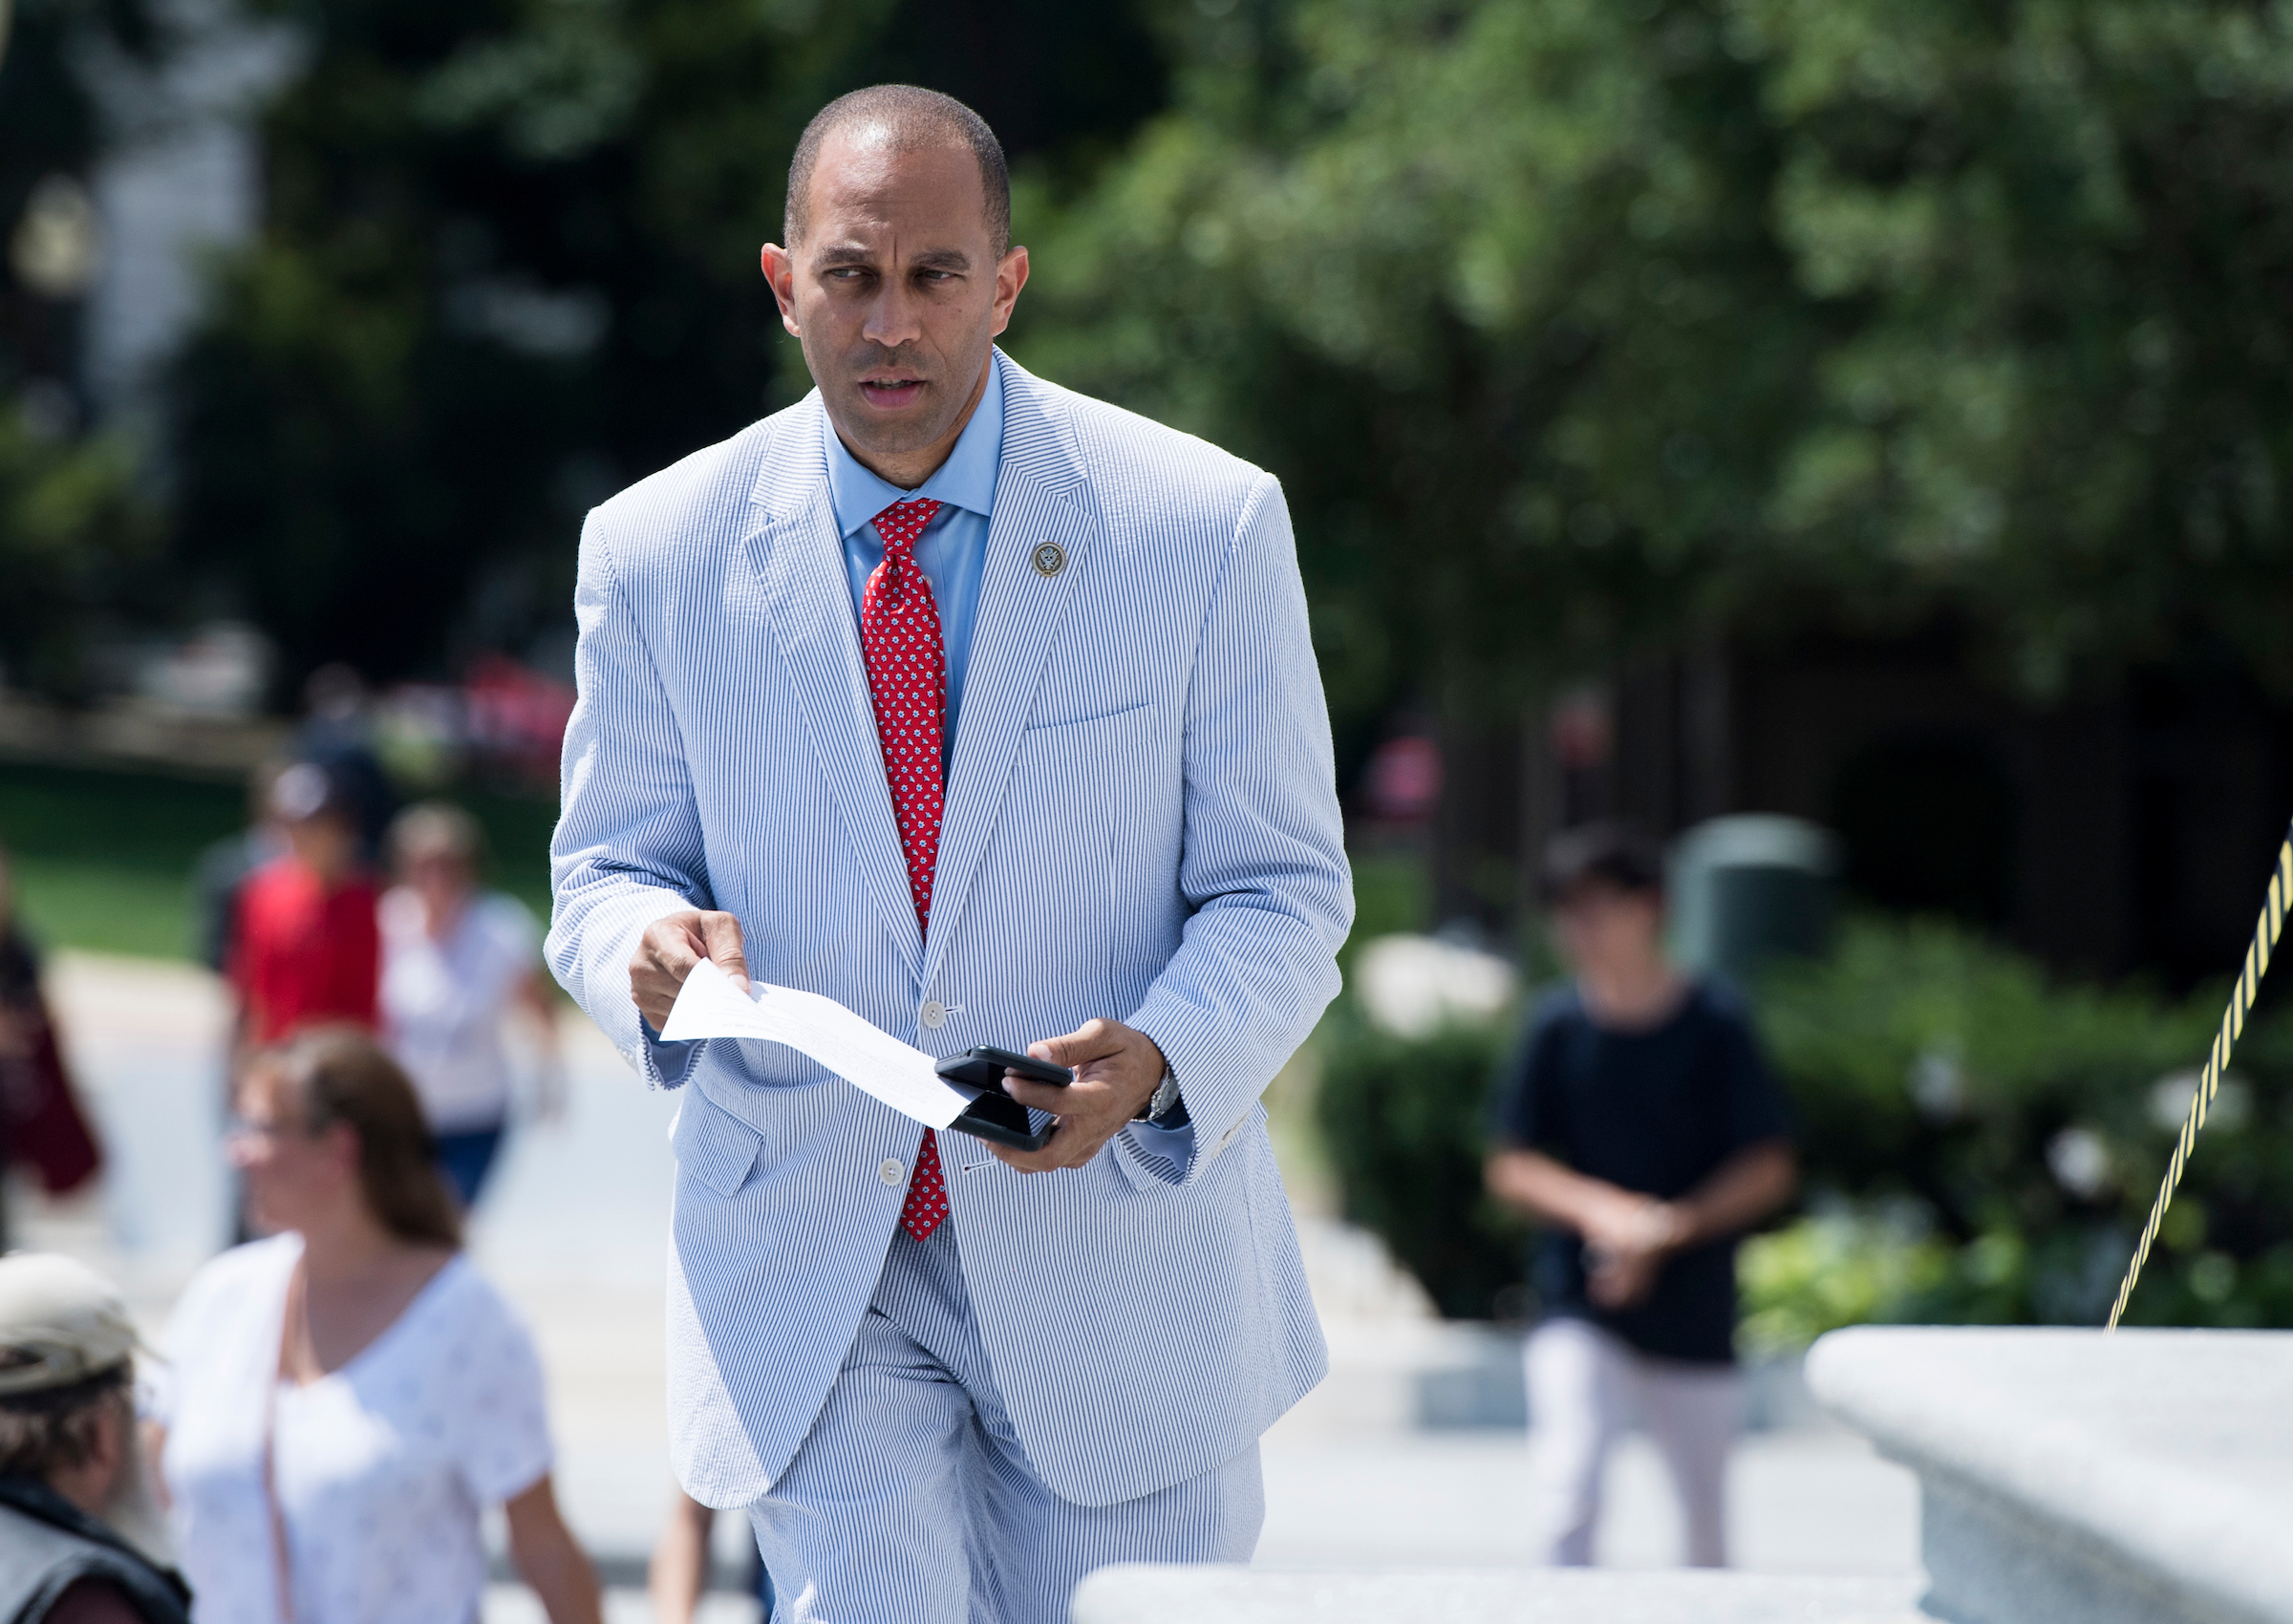 UNITED STATES - JULY 26: Rep. Hakeem Jeffries, D-N.Y., walks up the House steps for a vote in the Capitol on Thursday, July 26, 2018. (Photo By Bill Clark/CQ Roll Call)